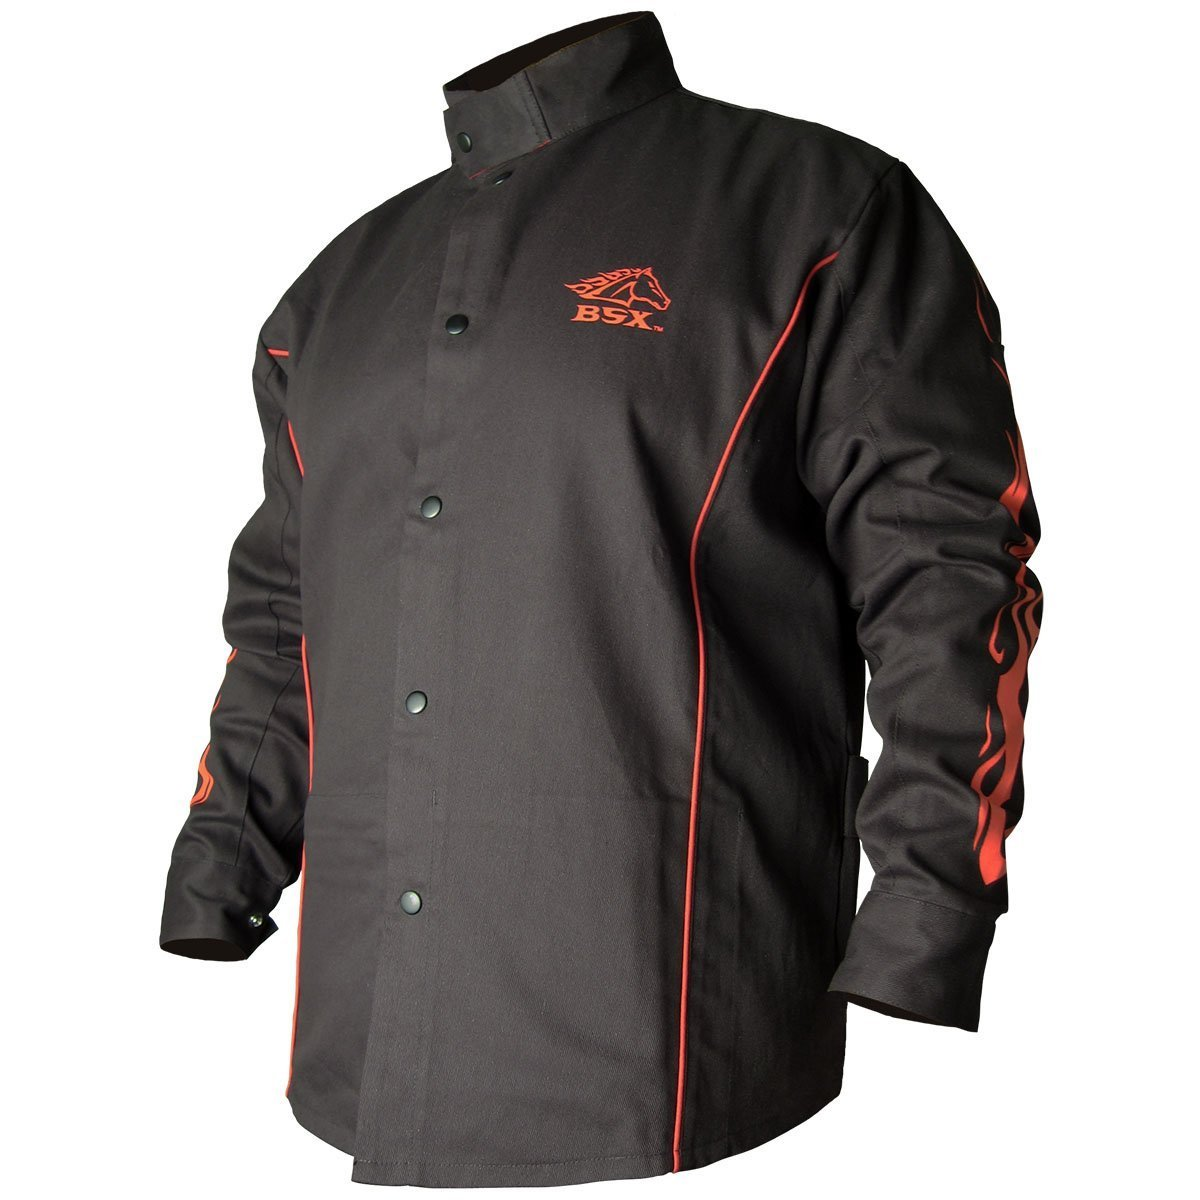 BLACK STALLION BSX® FR Welding Jacket - Black w/Red Flames - MEDIUM Revco BX9C-MD